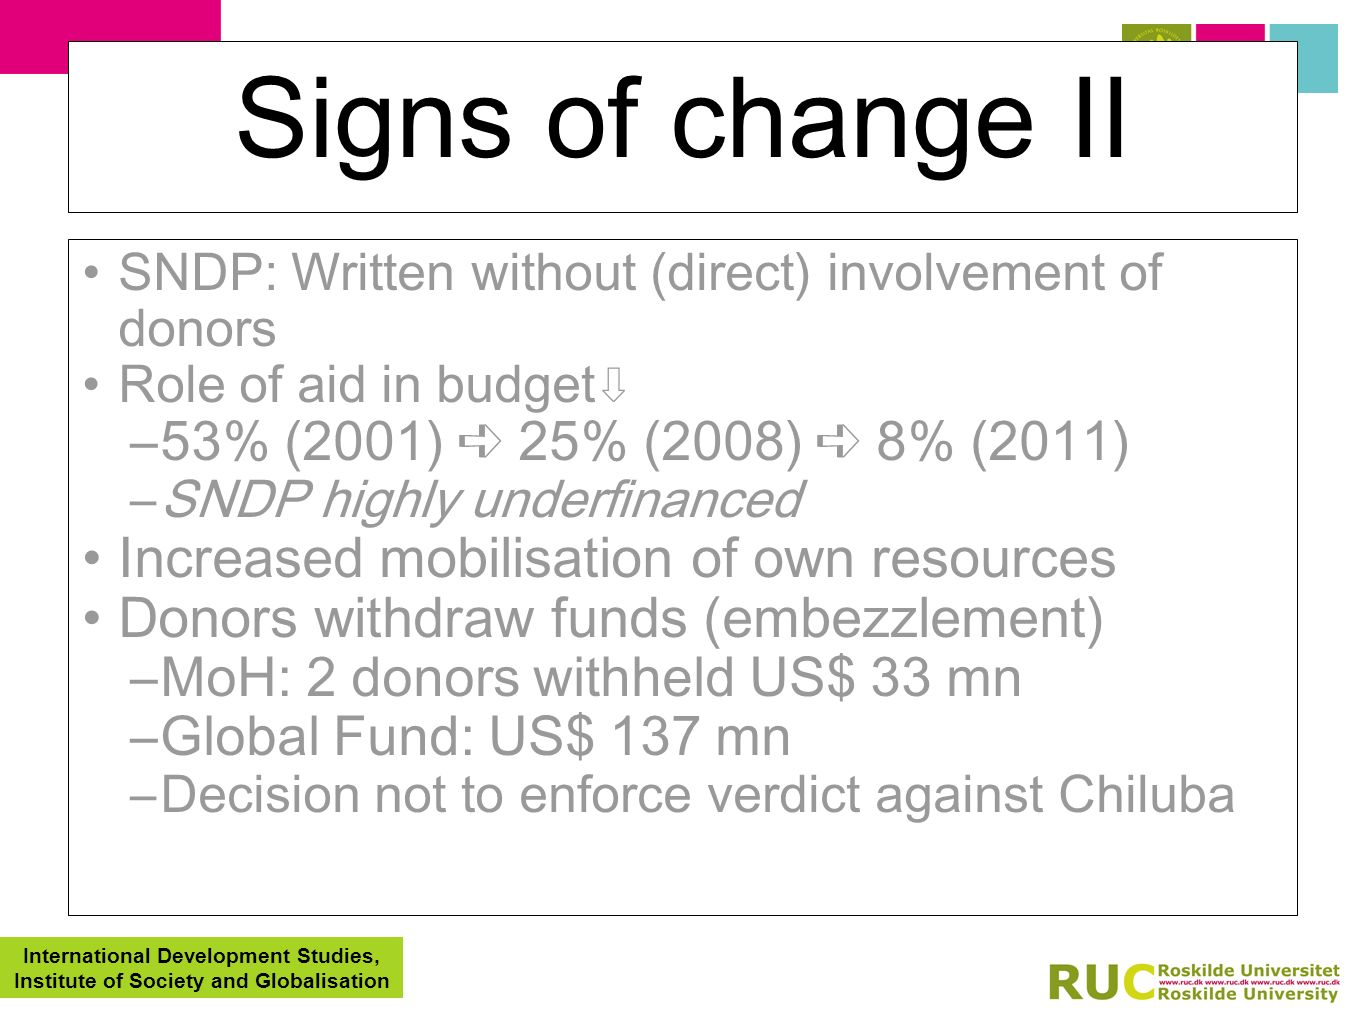 International Development Studies, Institute of Society and Globalisation Signs of change II SNDP: Written without (direct) involvement of donors Role of aid in budget –53% (2001) 25% (2008) 8% (2011) –SNDP highly underfinanced Increased mobilisation of own resources Donors withdraw funds (embezzlement) –MoH: 2 donors withheld US$ 33 mn –Global Fund: US$ 137 mn –Decision not to enforce verdict against Chiluba